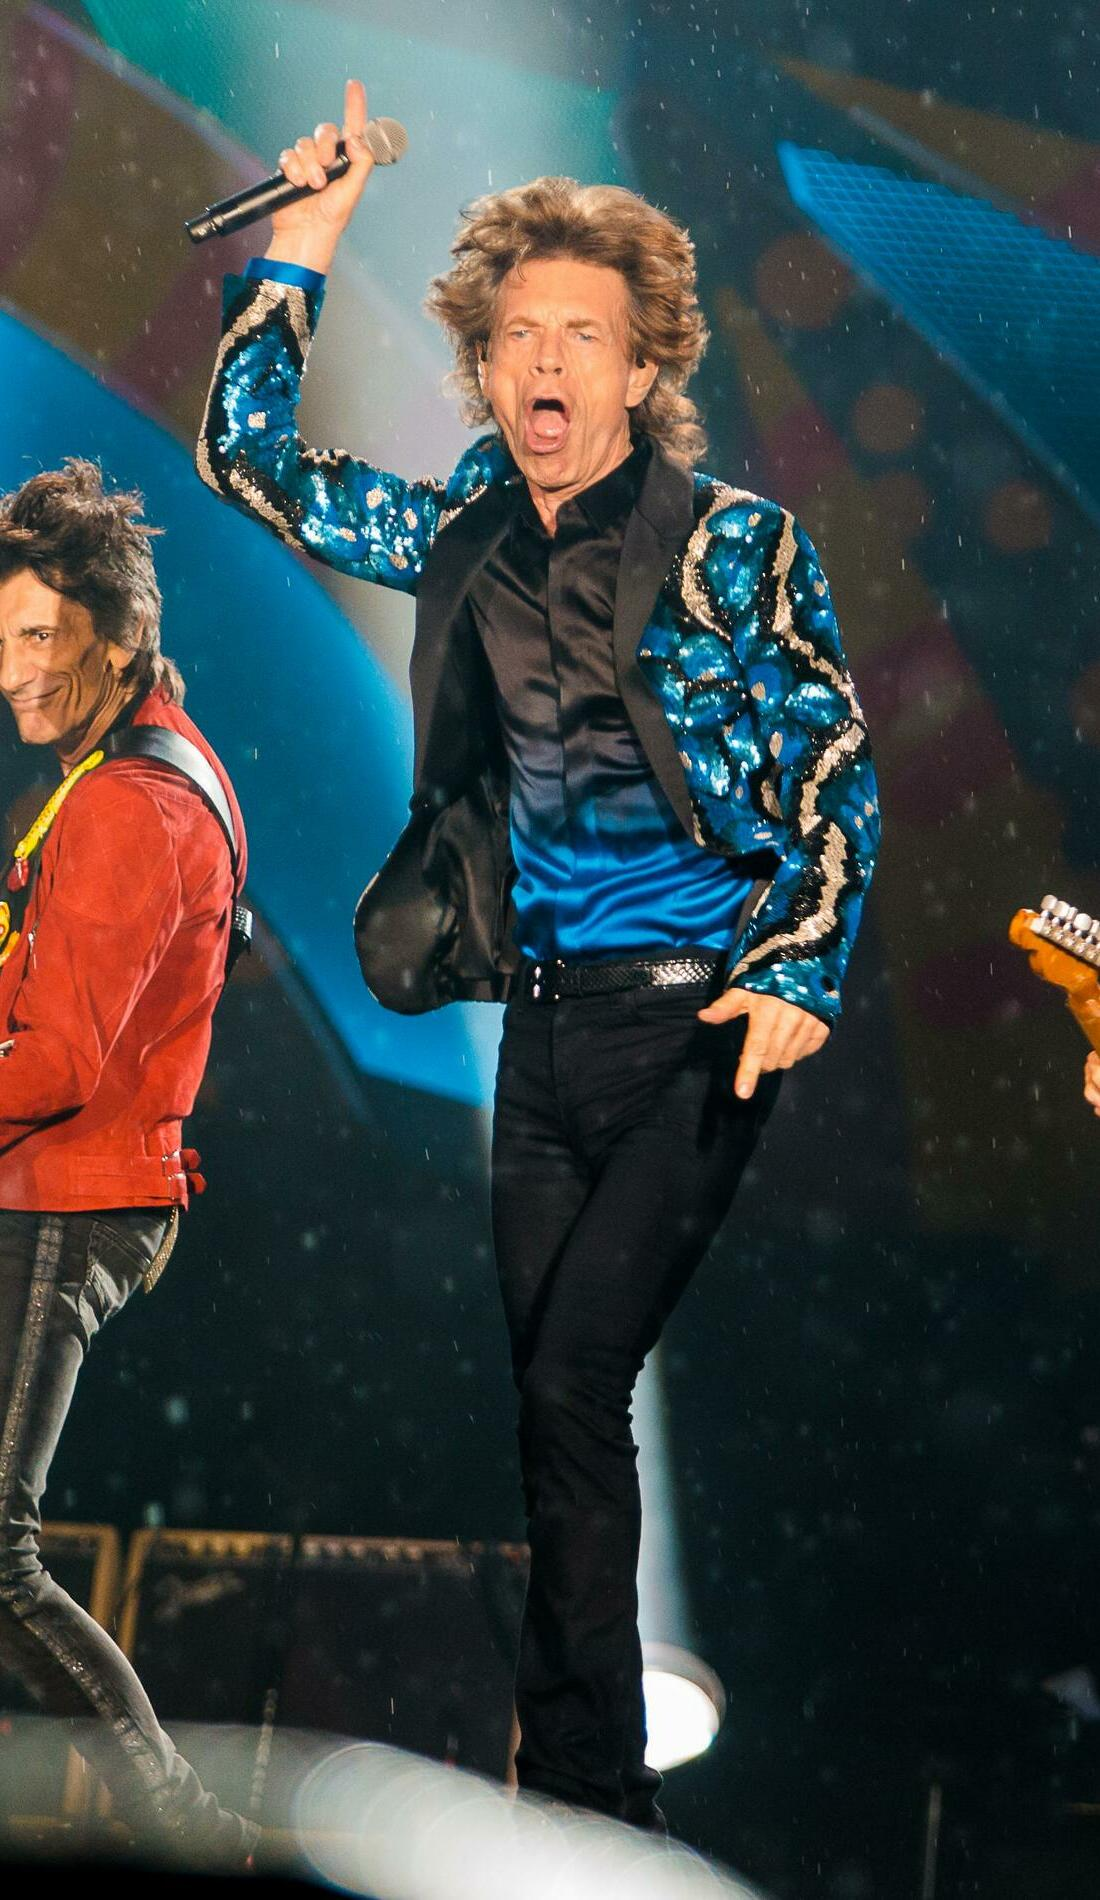 A The Rolling Stones live event